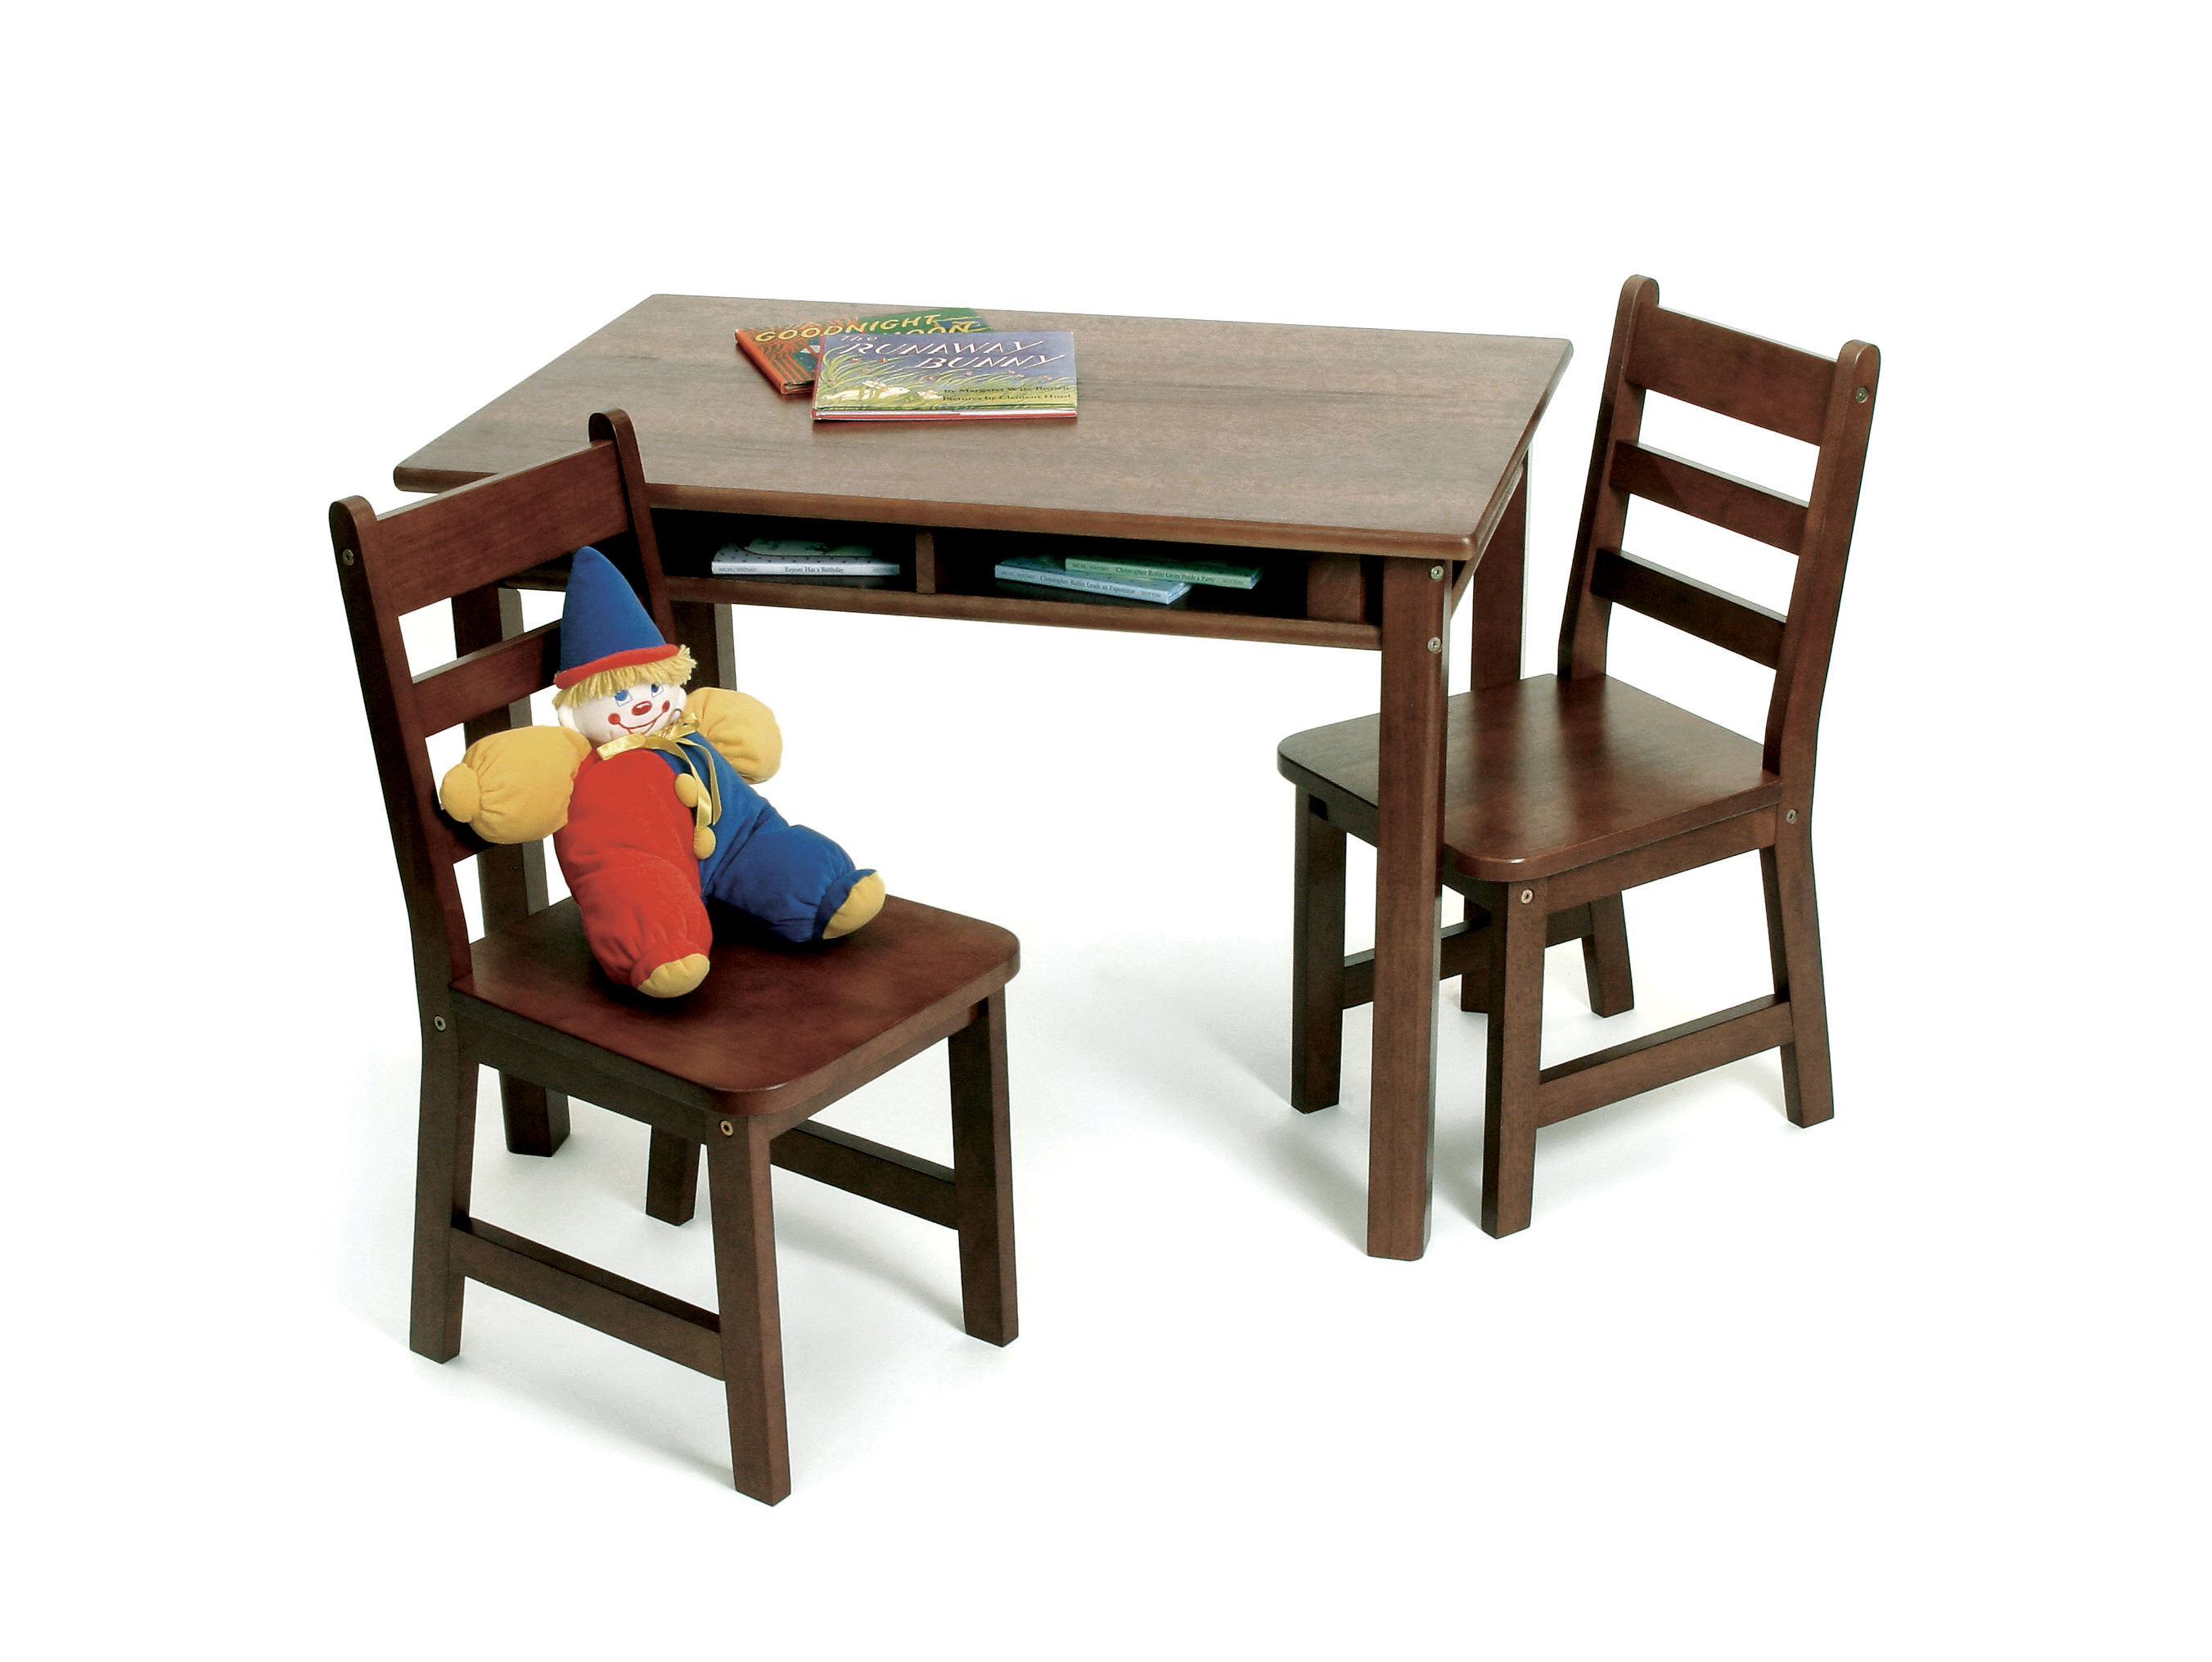 Childrens Wooden Table And Chairs Child S Rectangular Table With Shelves 2 Chairs Walnut Finish